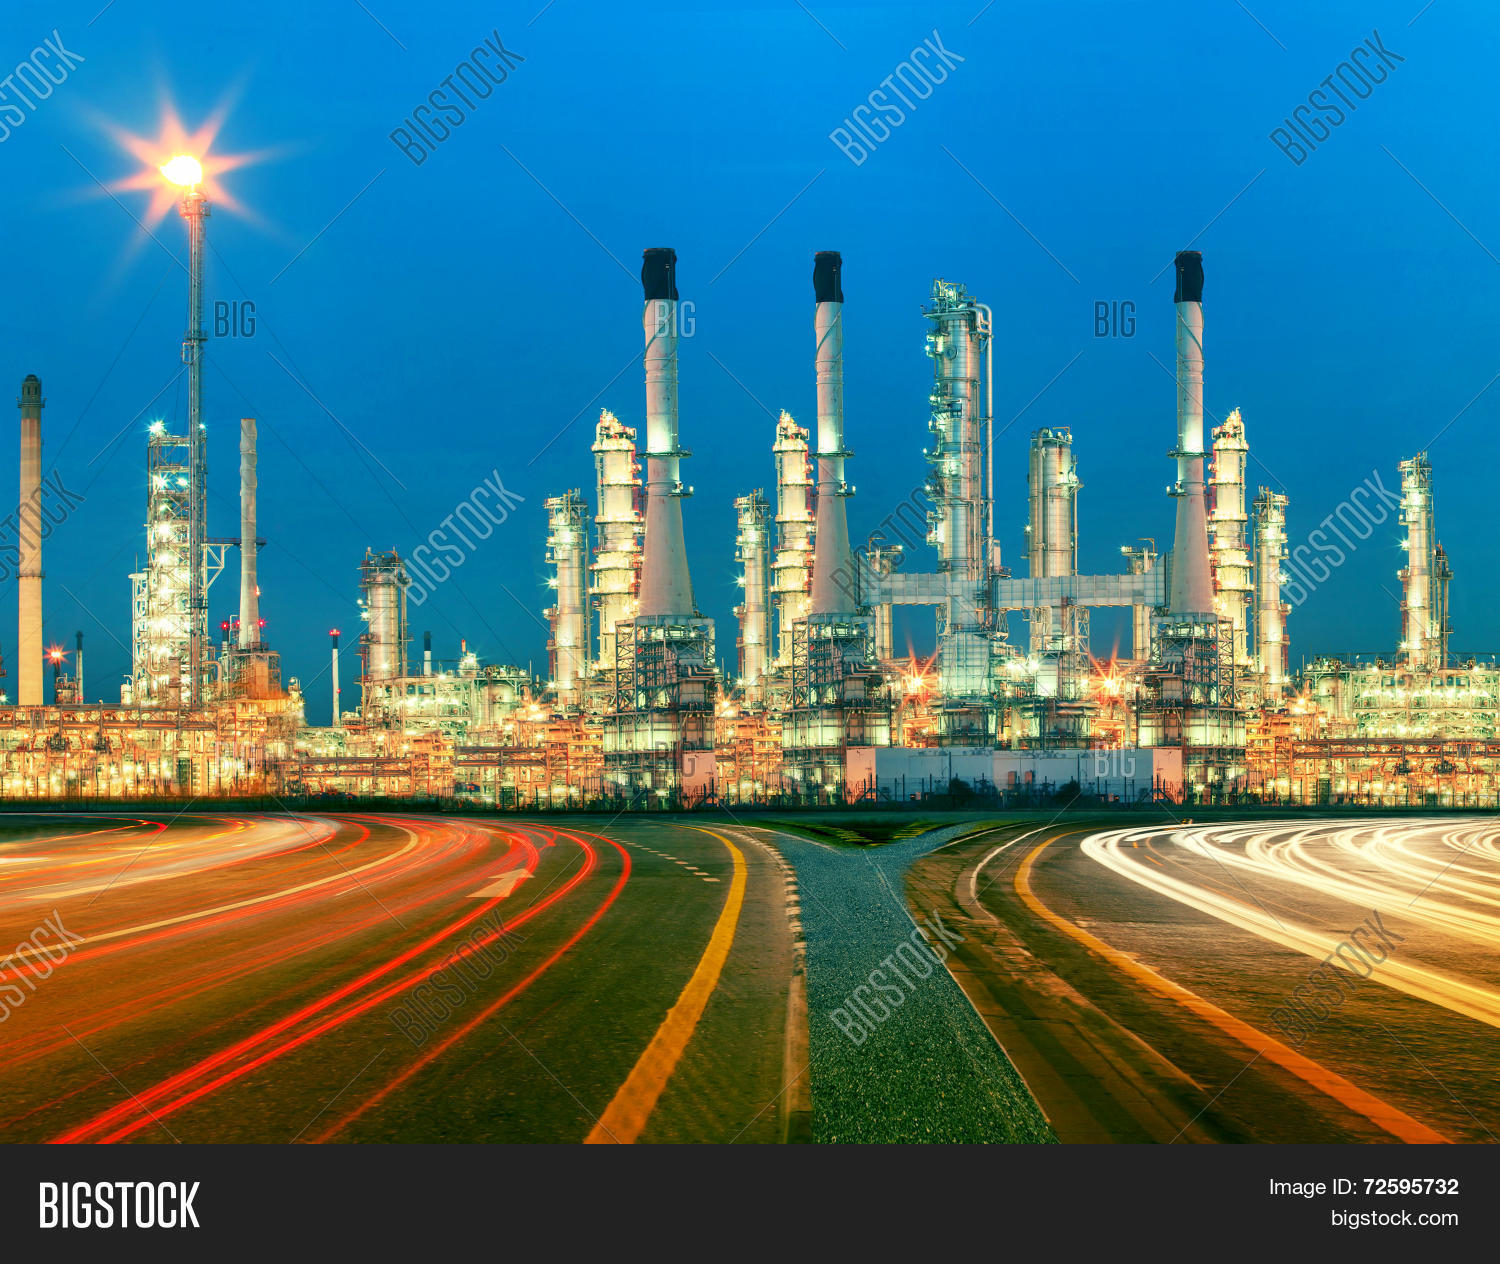 Of Oil Refinery Plant In Heav Petrochemicaly Industry Estate Use ...